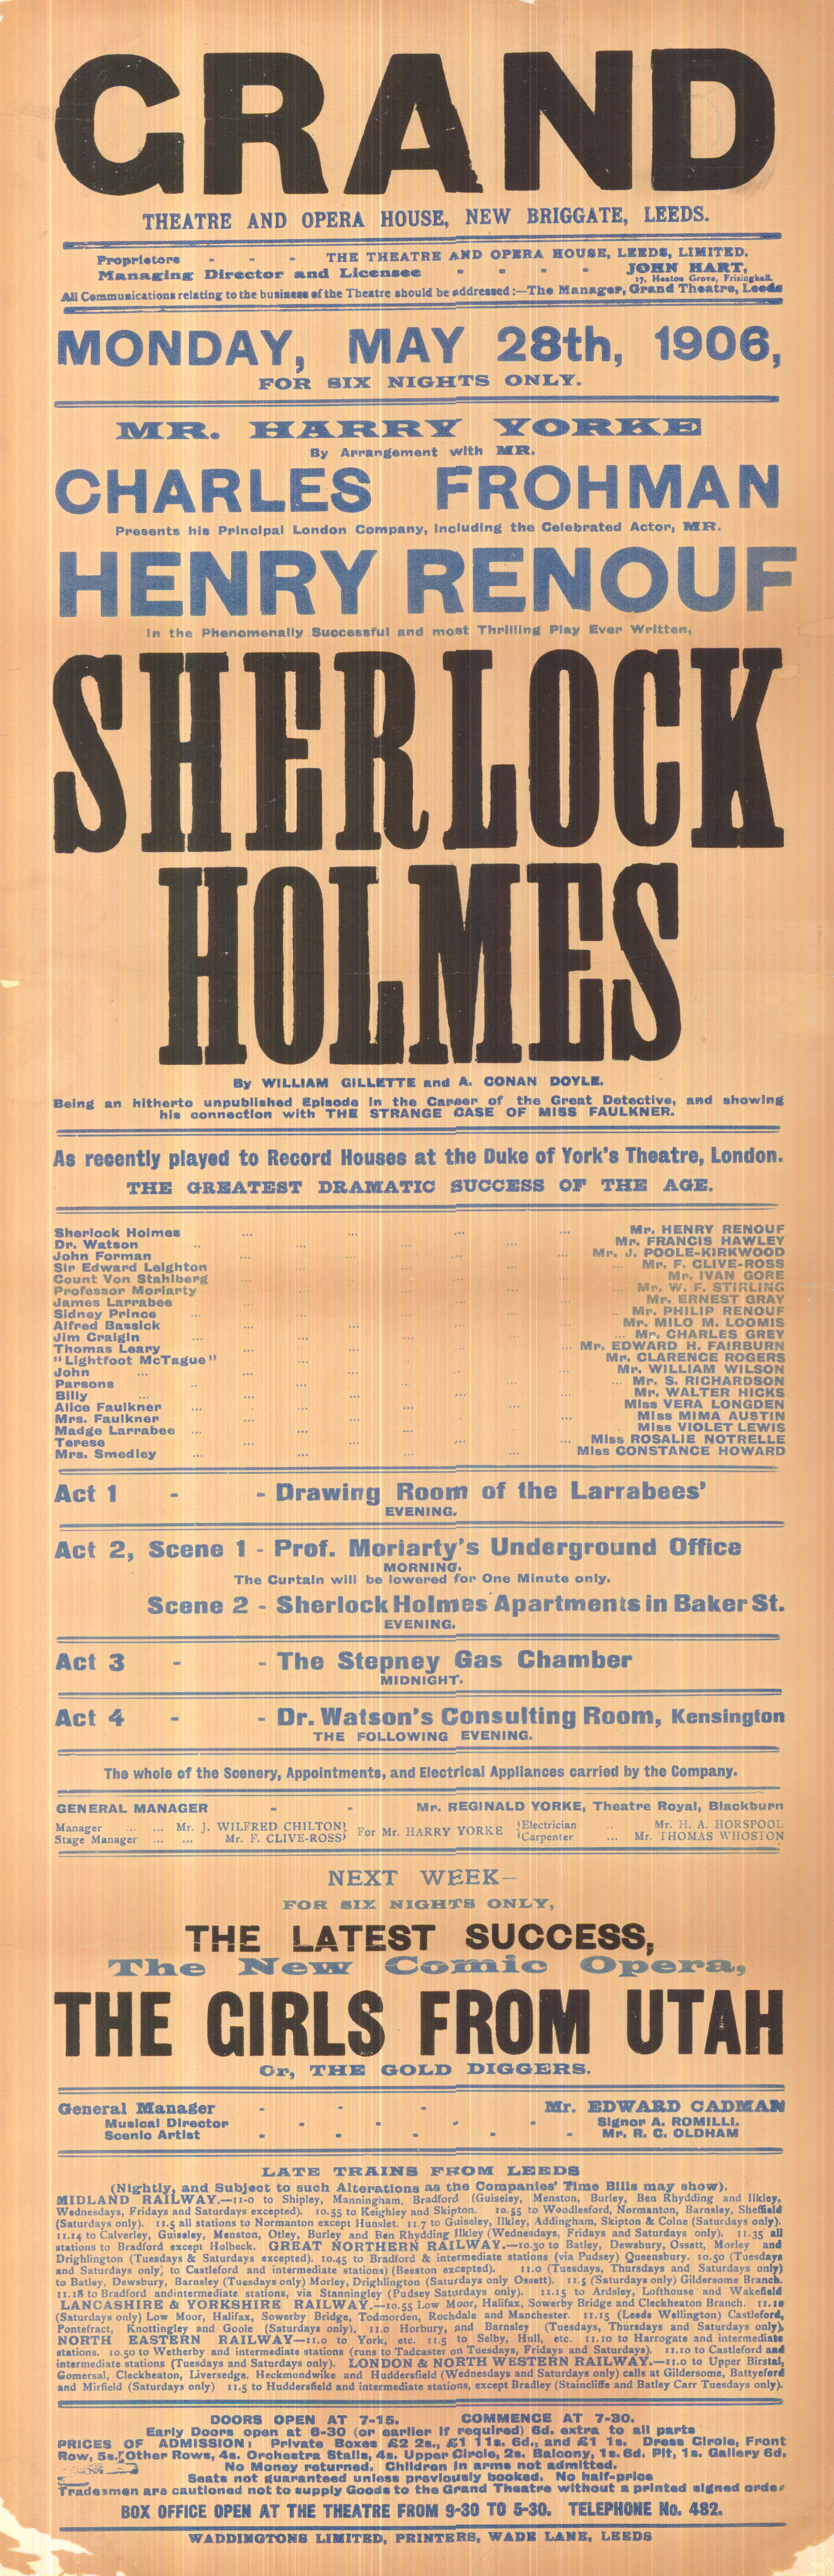 Grand Theatre playbill advertising a new Sherlock Holmes play.